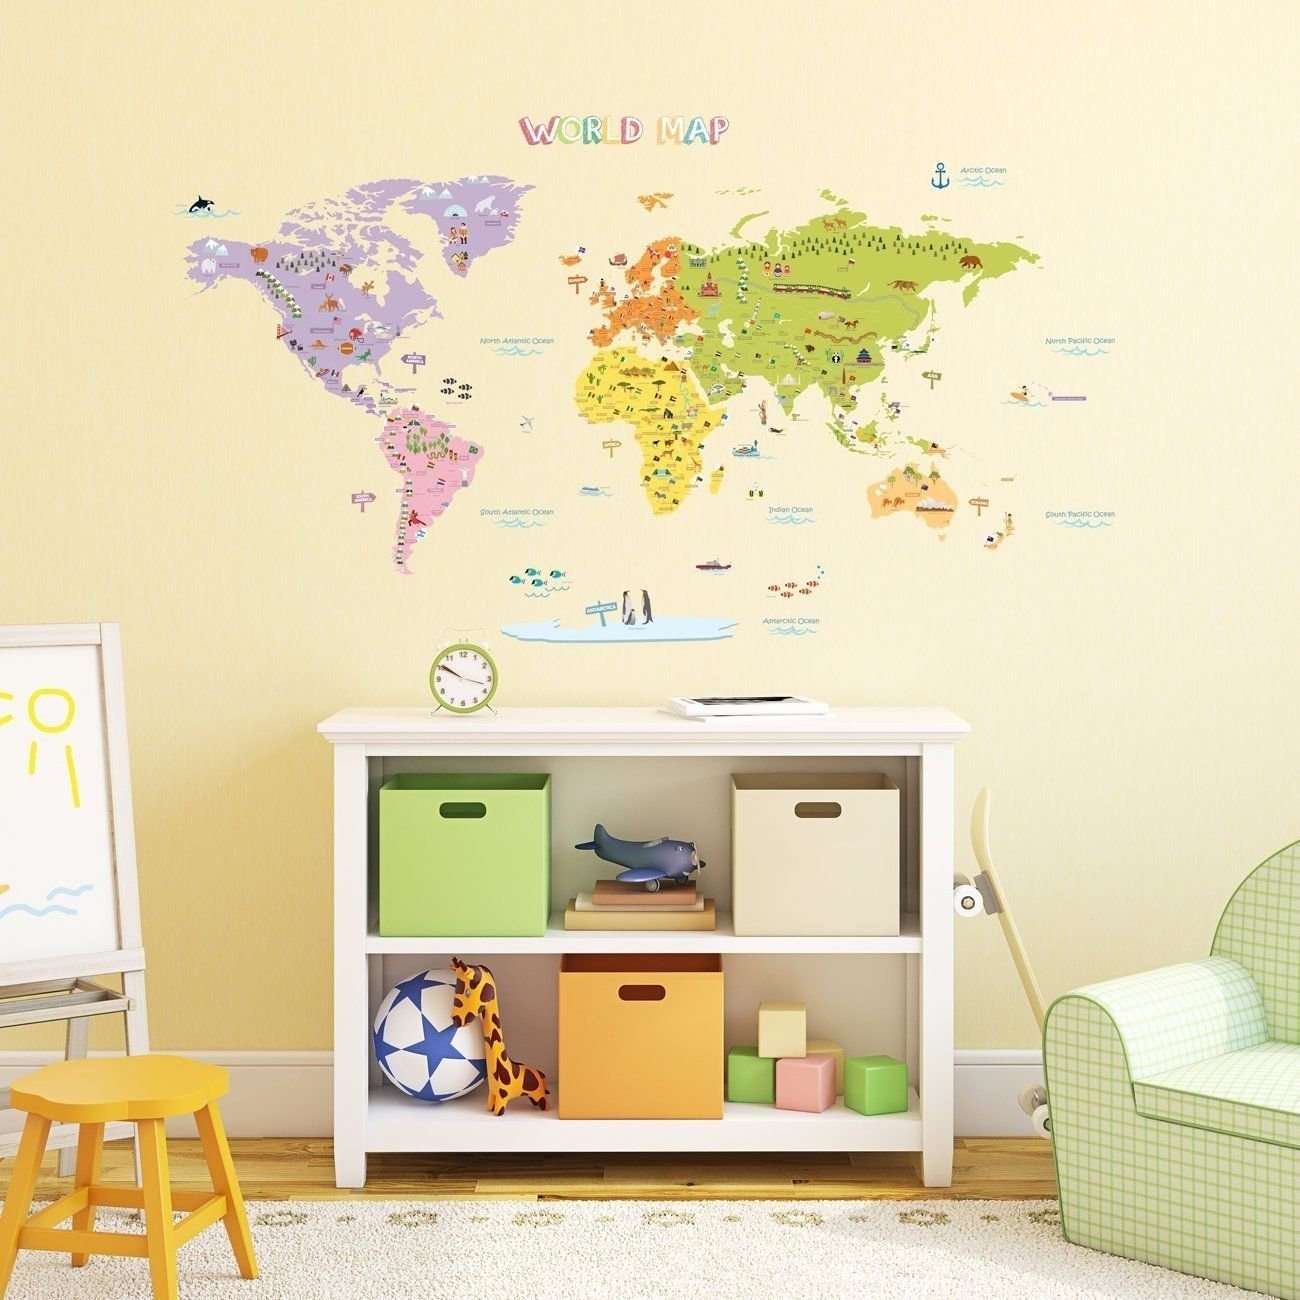 Kids World Map Wall Decals Stickers Great For The Bedroom Or | Etsy Within Wall Art Stickers World Map (View 17 of 20)